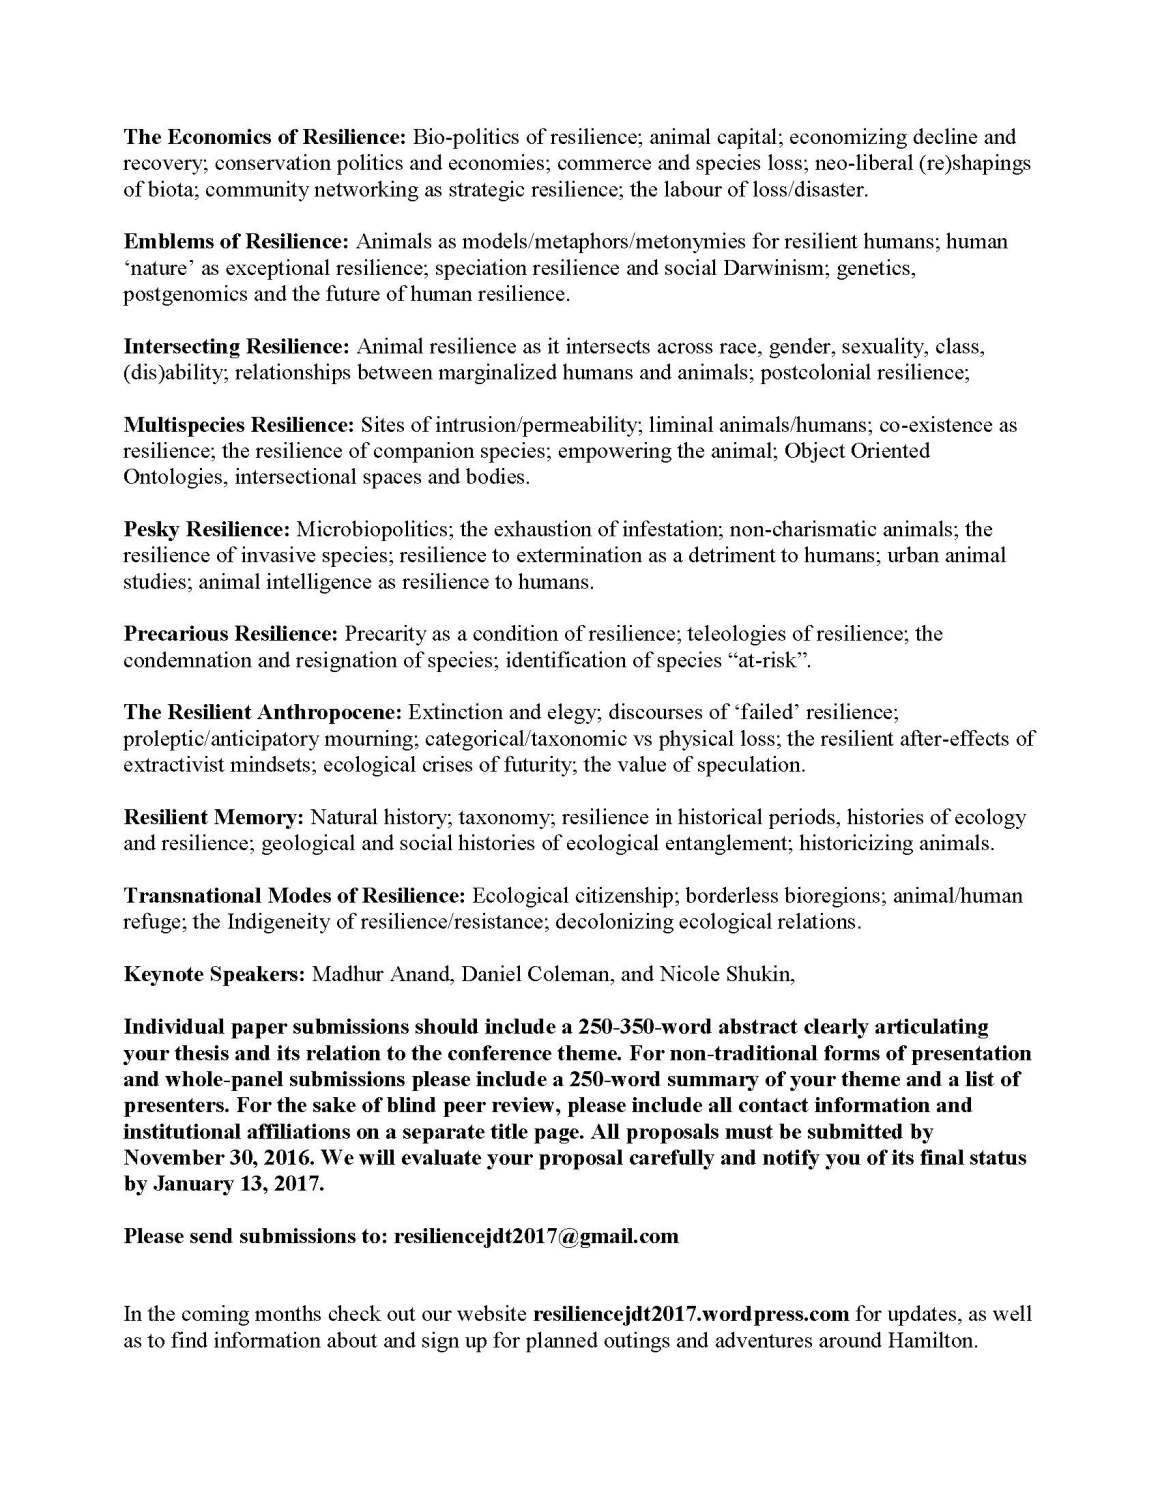 resilience-in-a-multispecies-world-nov-2016-cfp_page_2